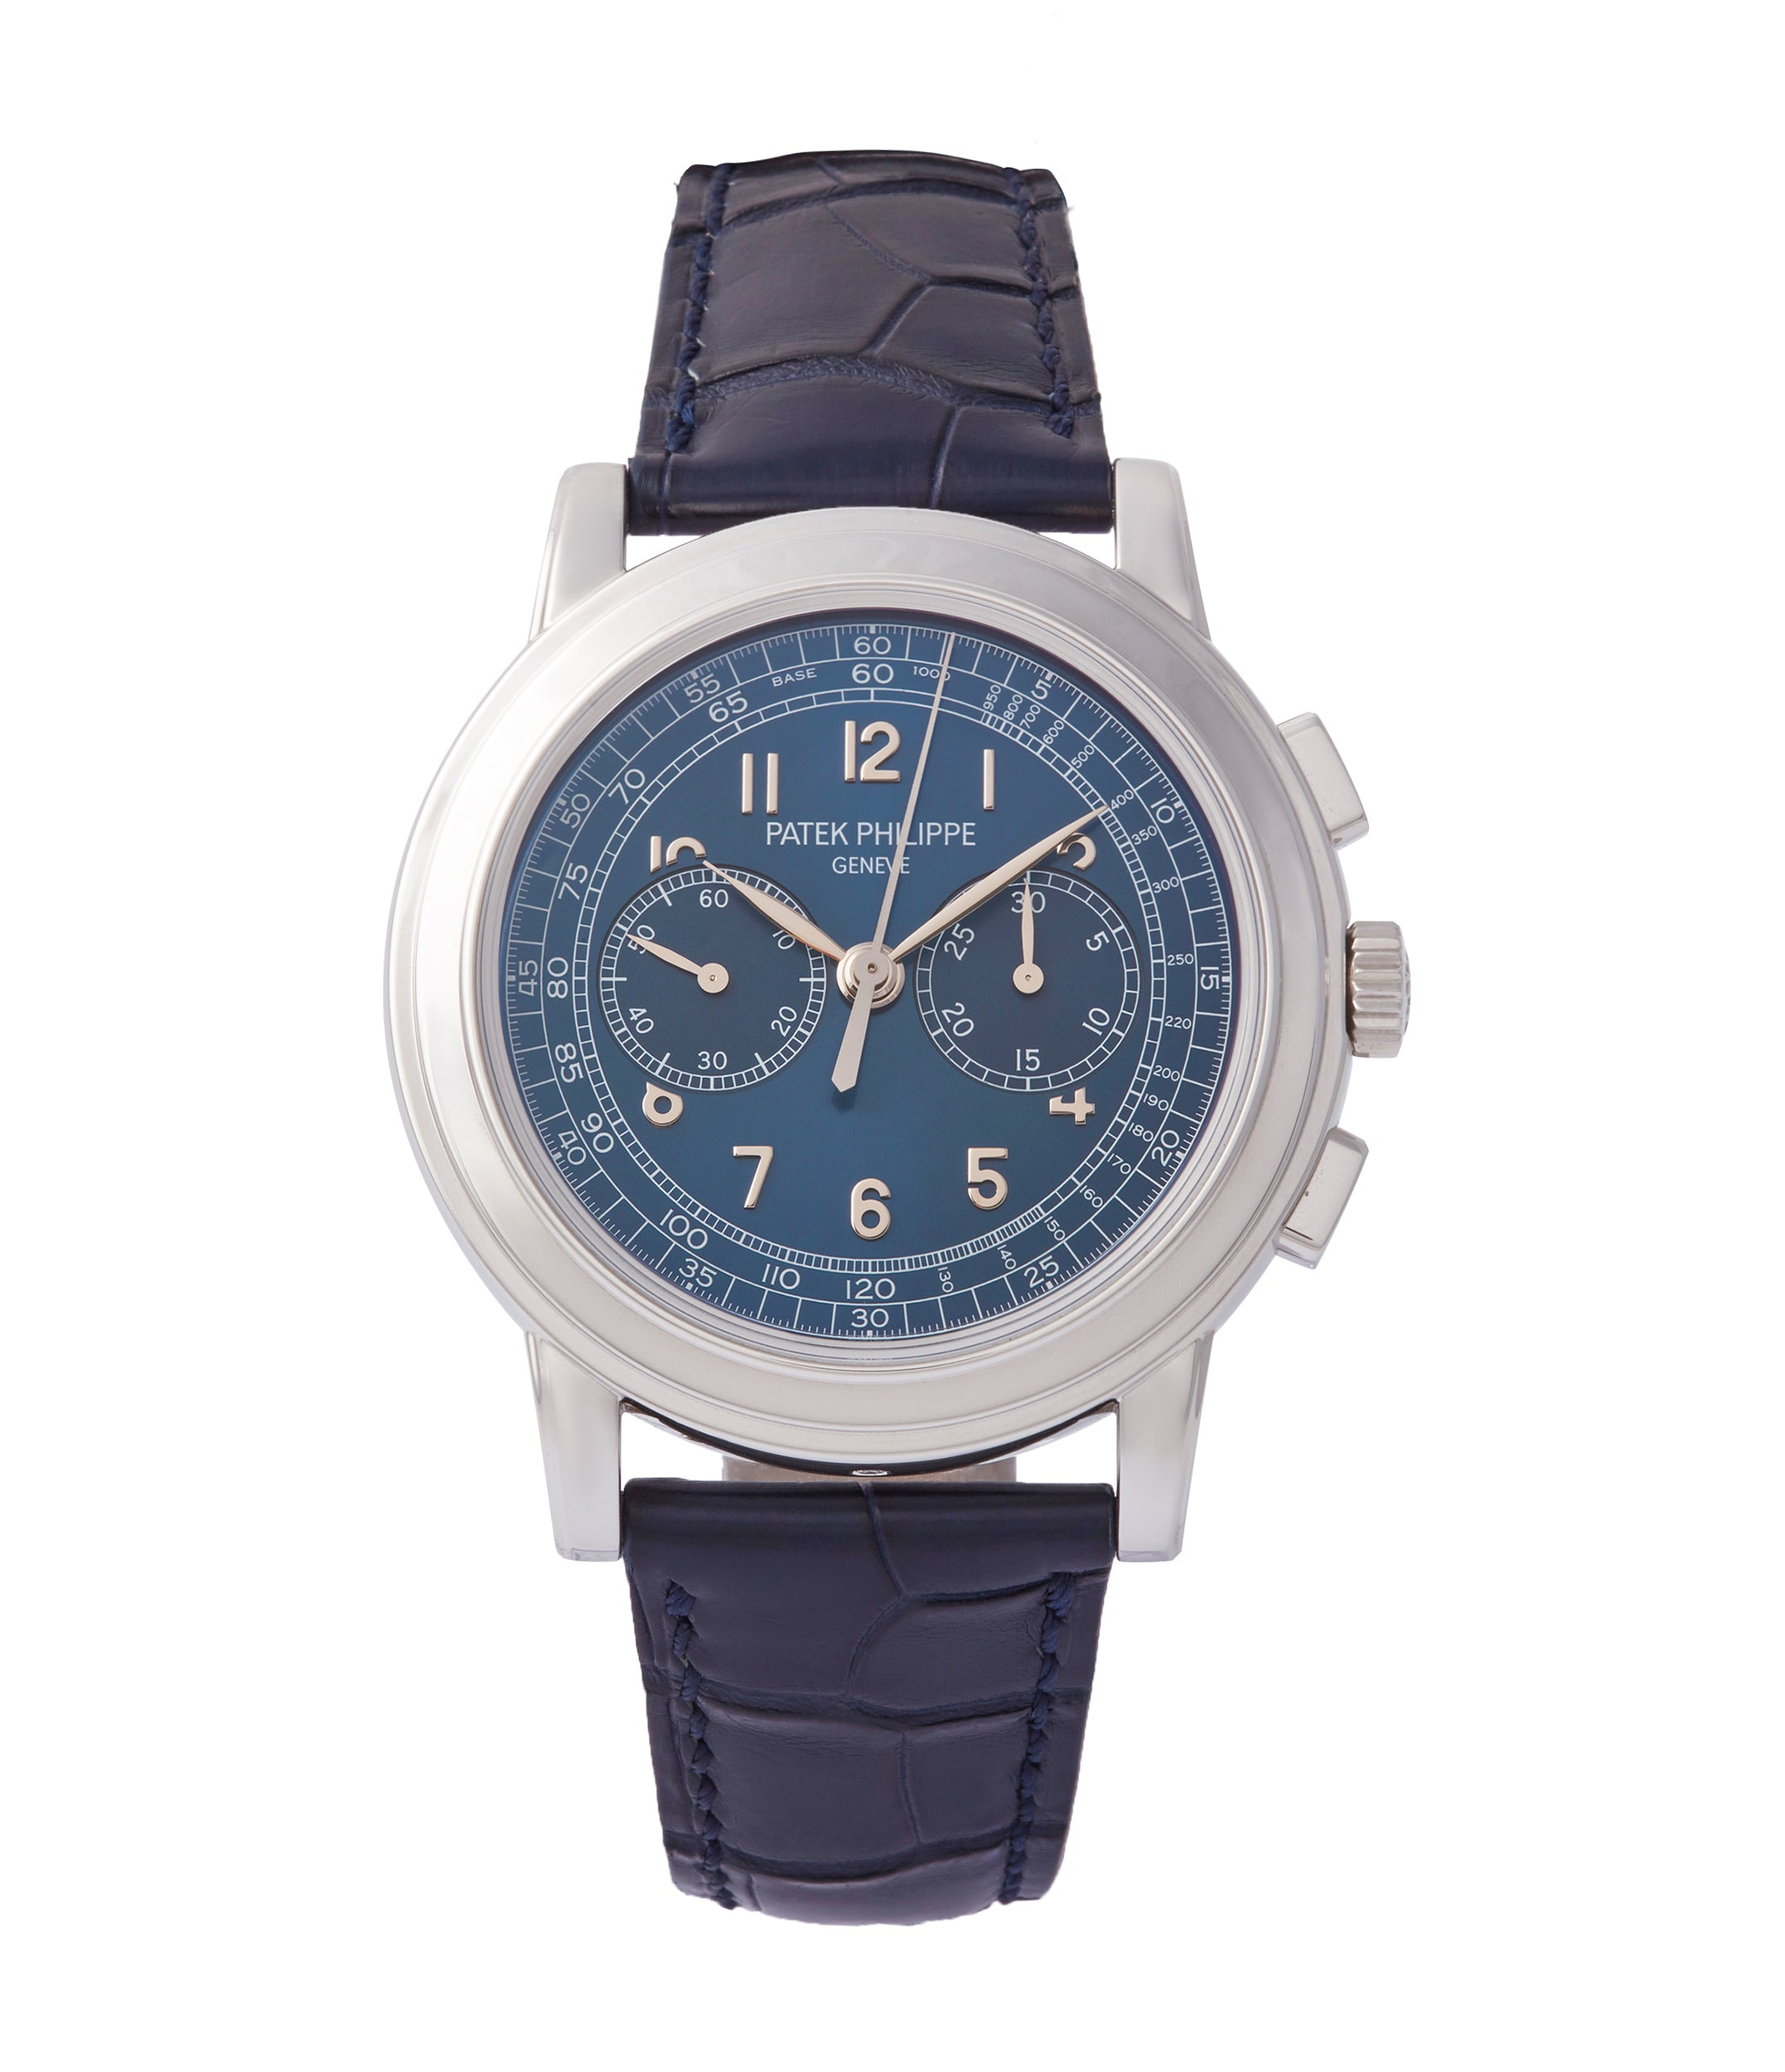 buy Patek Philippe 5070P Saatchi Limited Edition blue dial platinum pre-owned watch for sale online A Collected Man London UK specialist of rare watches